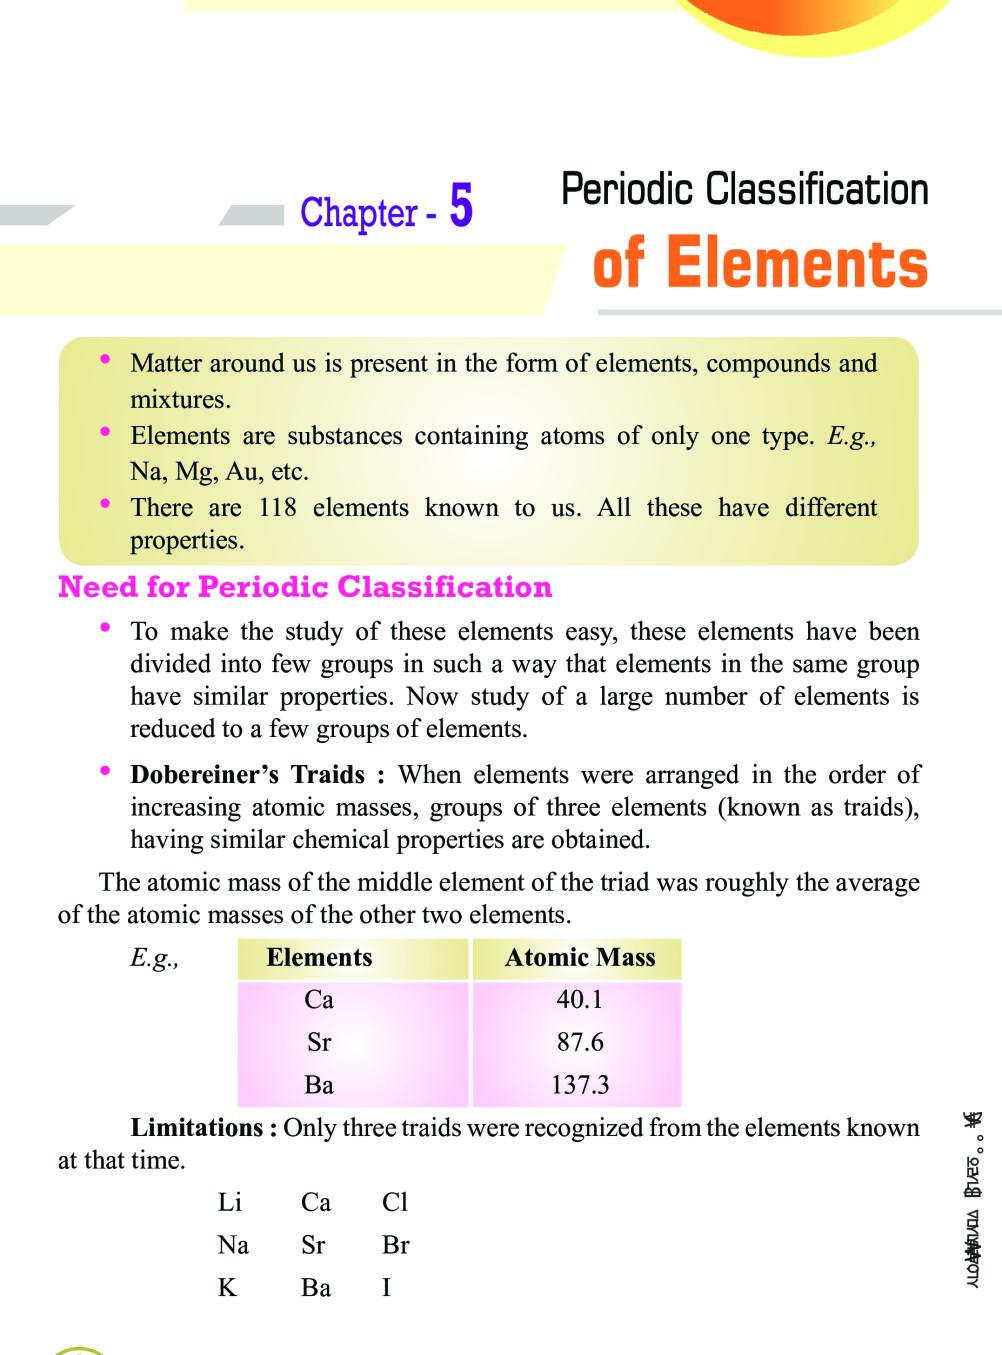 Class 10 Science Periodic Classifications of Elements Notes